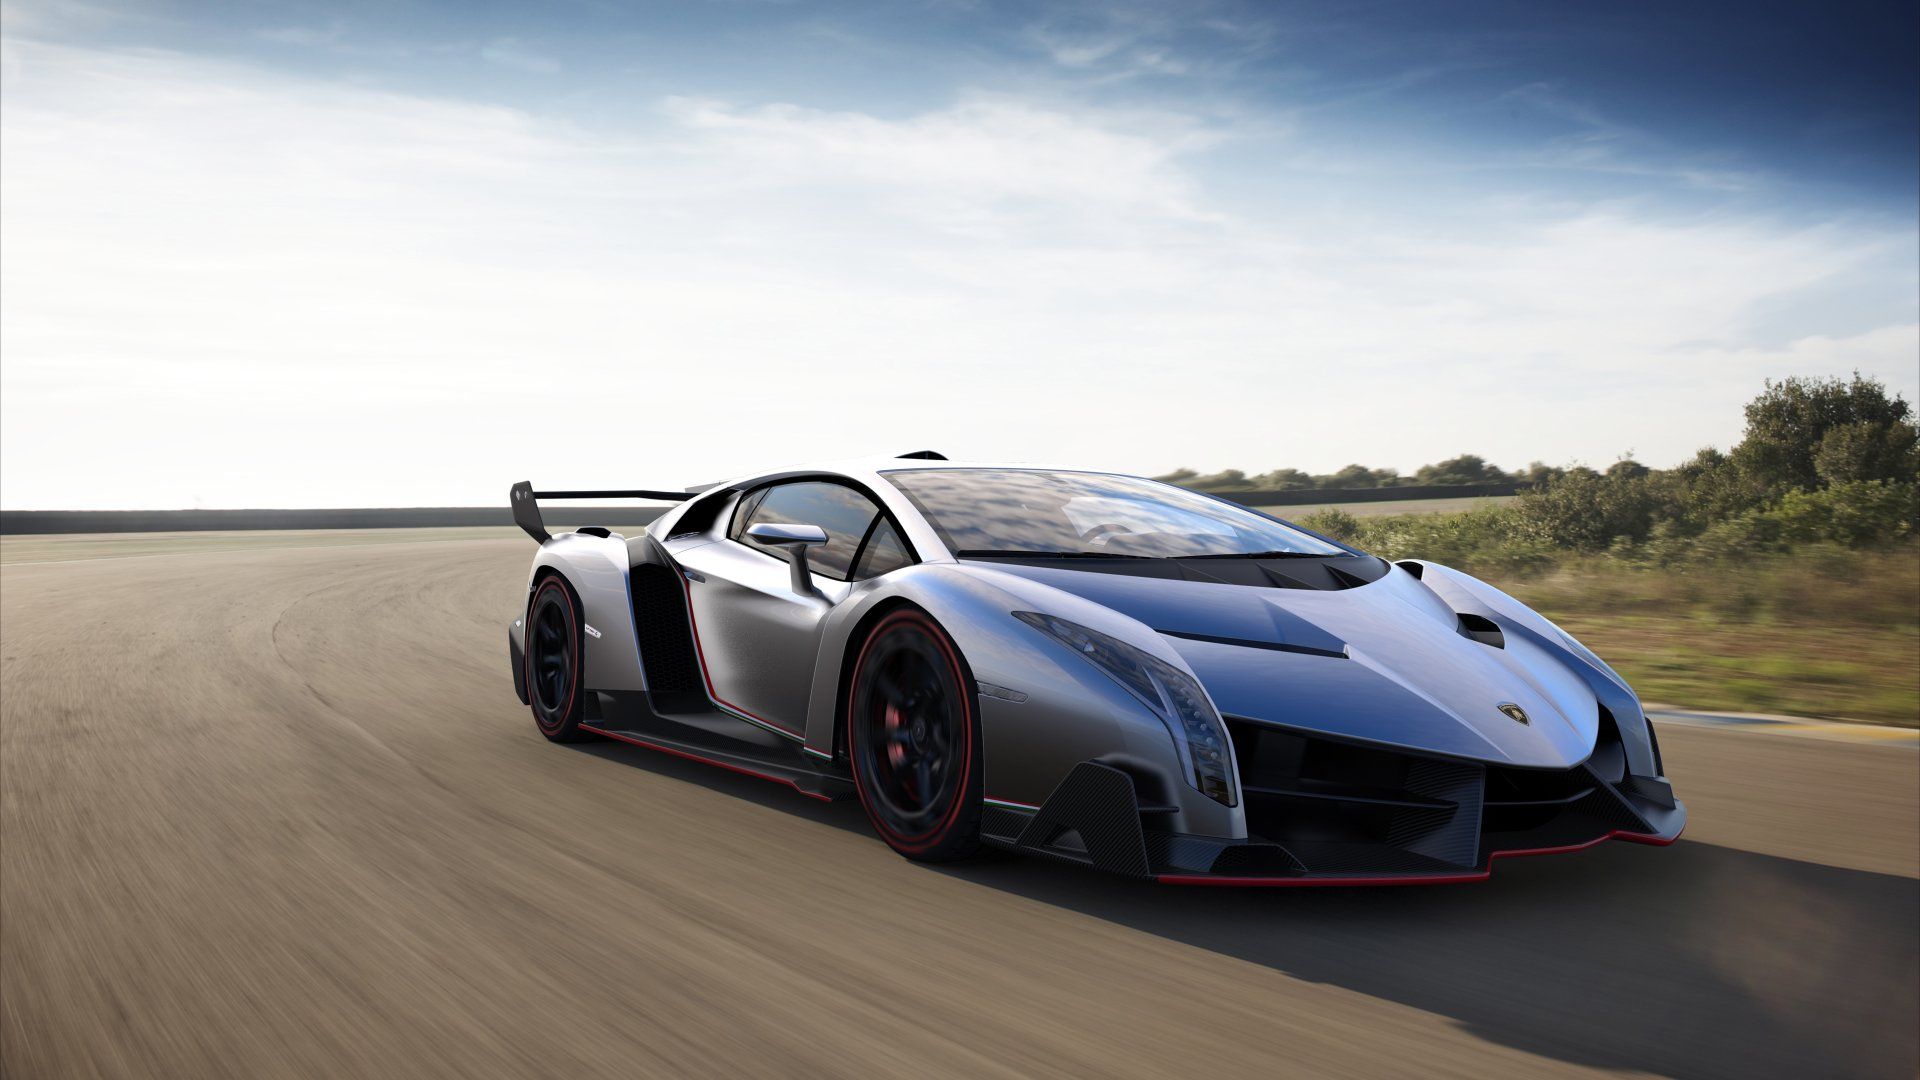 16 Lamborghini Veneno Hd Wallpapers Background Images Wallpaper